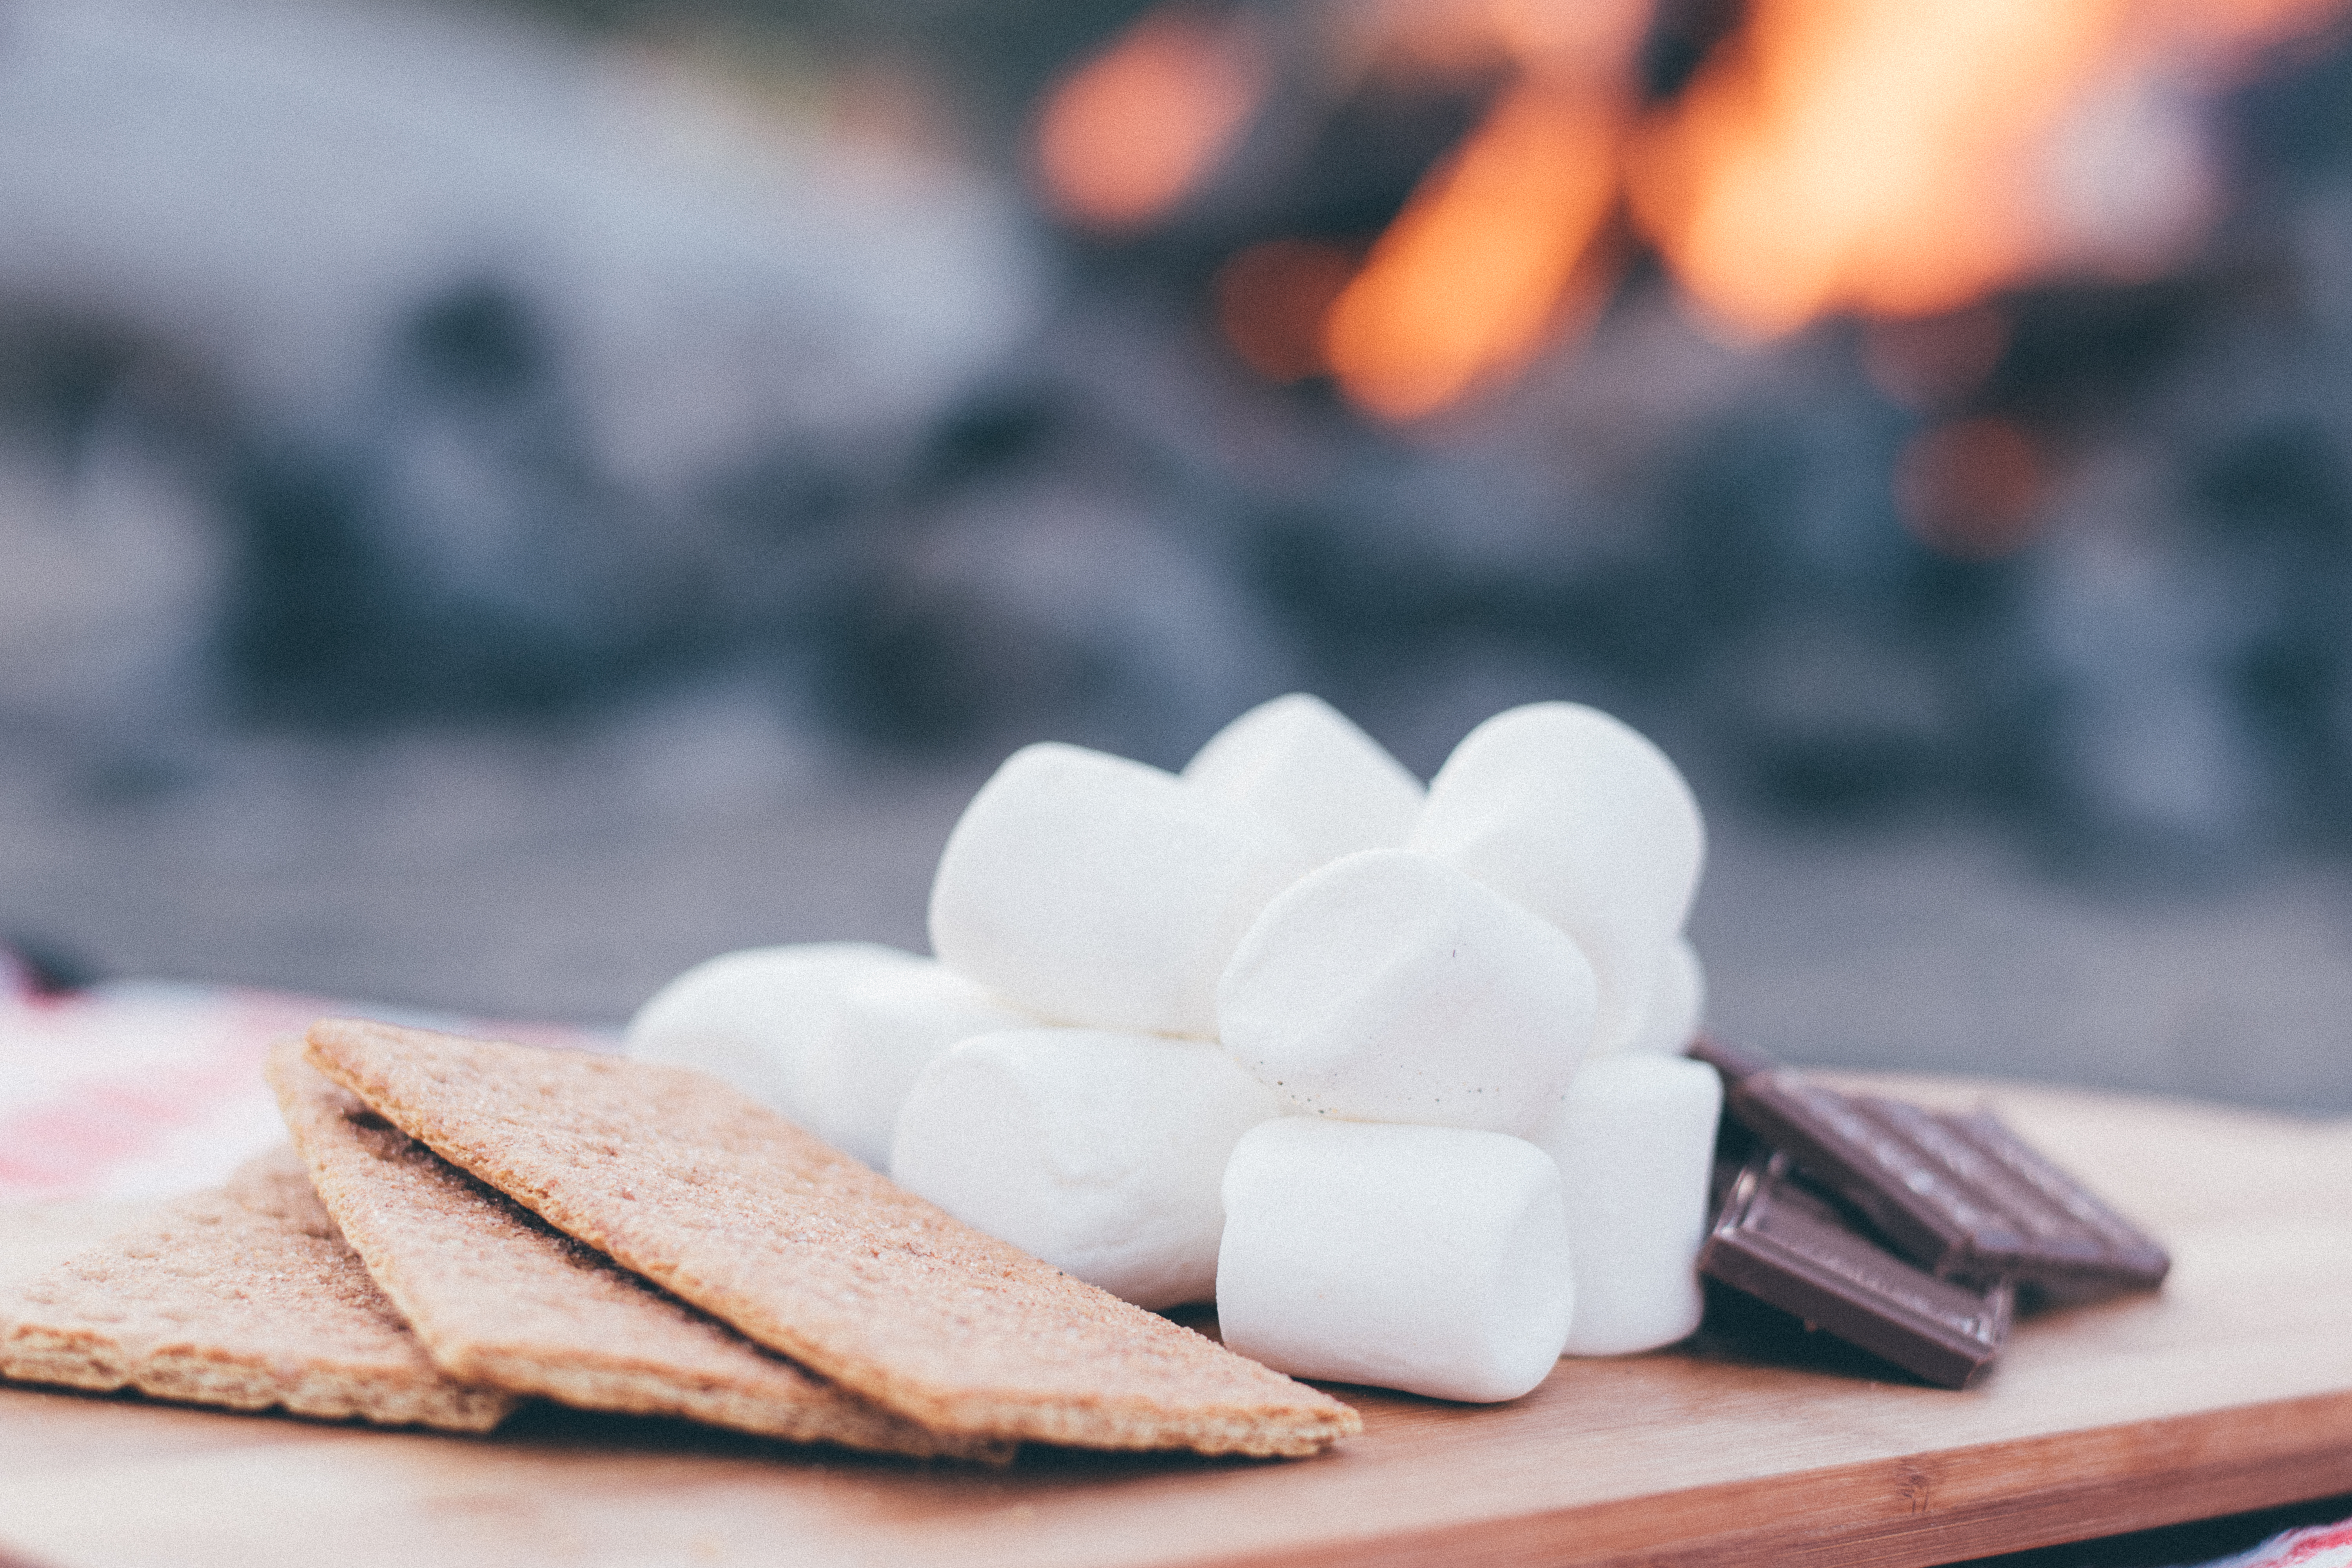 4th of July Desserts: How S'mores Became America's Favorite Campfire